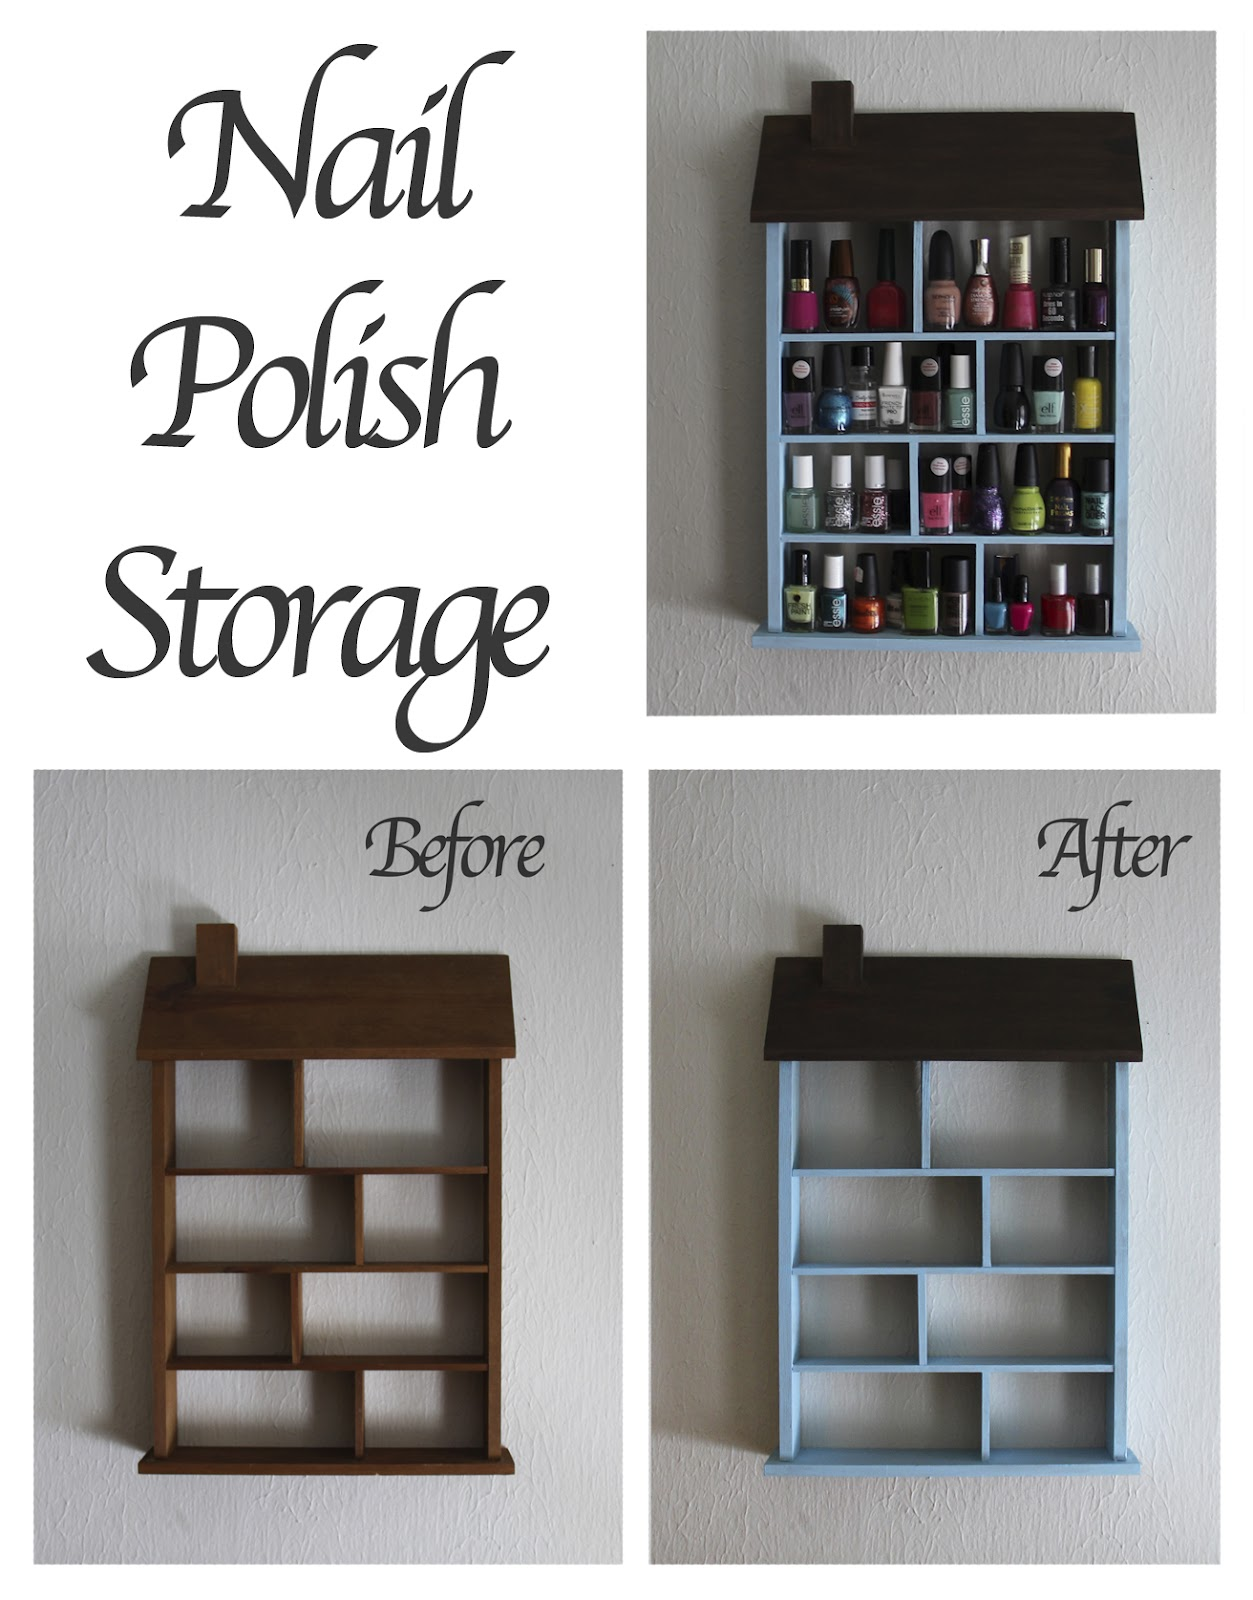 sewseas: DIY Nail Polish Storage